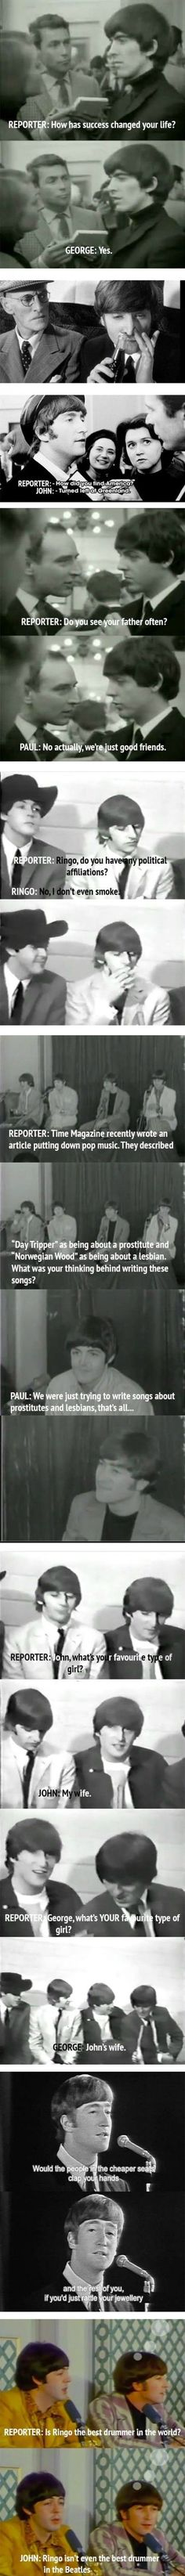 Why the Beatles worked so well together: They're all remarkably clever.